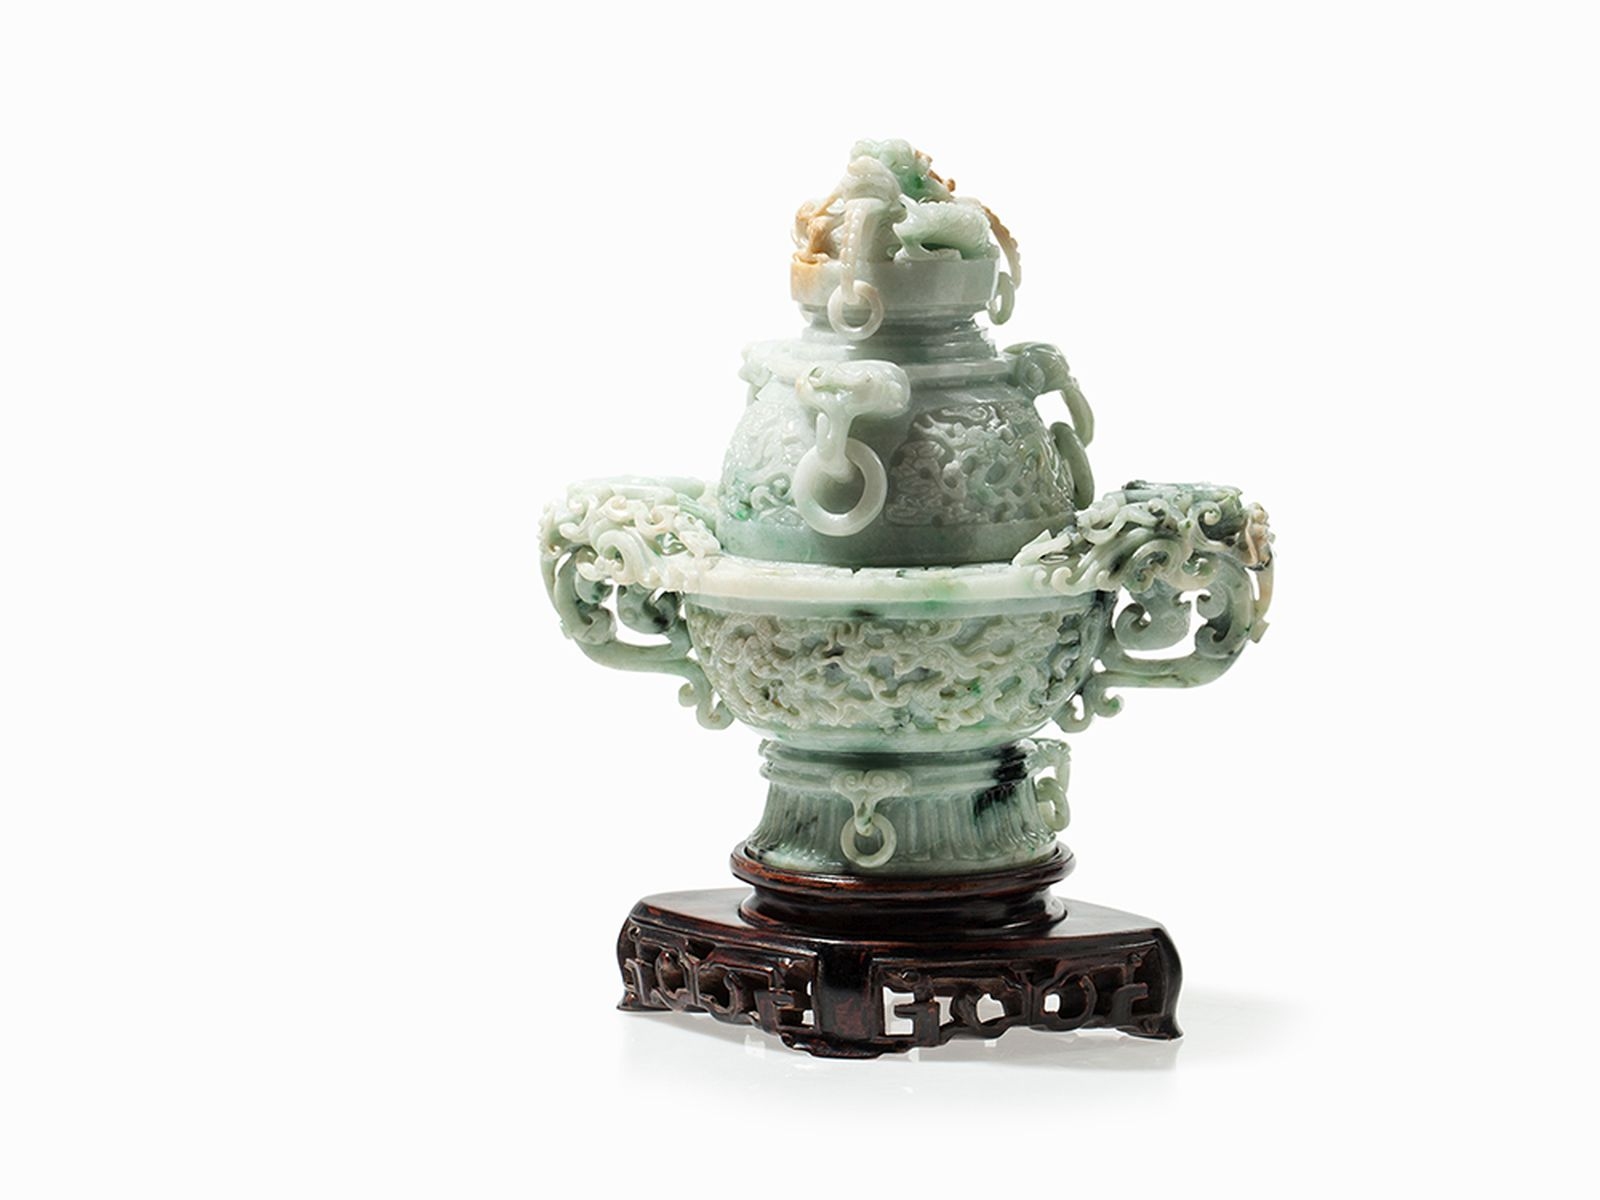 #72 Jade Vessel and Cover with Dragons, China, 20th C. | Jade Deckelgefäß mit Drachen, China, 20. Jh Image